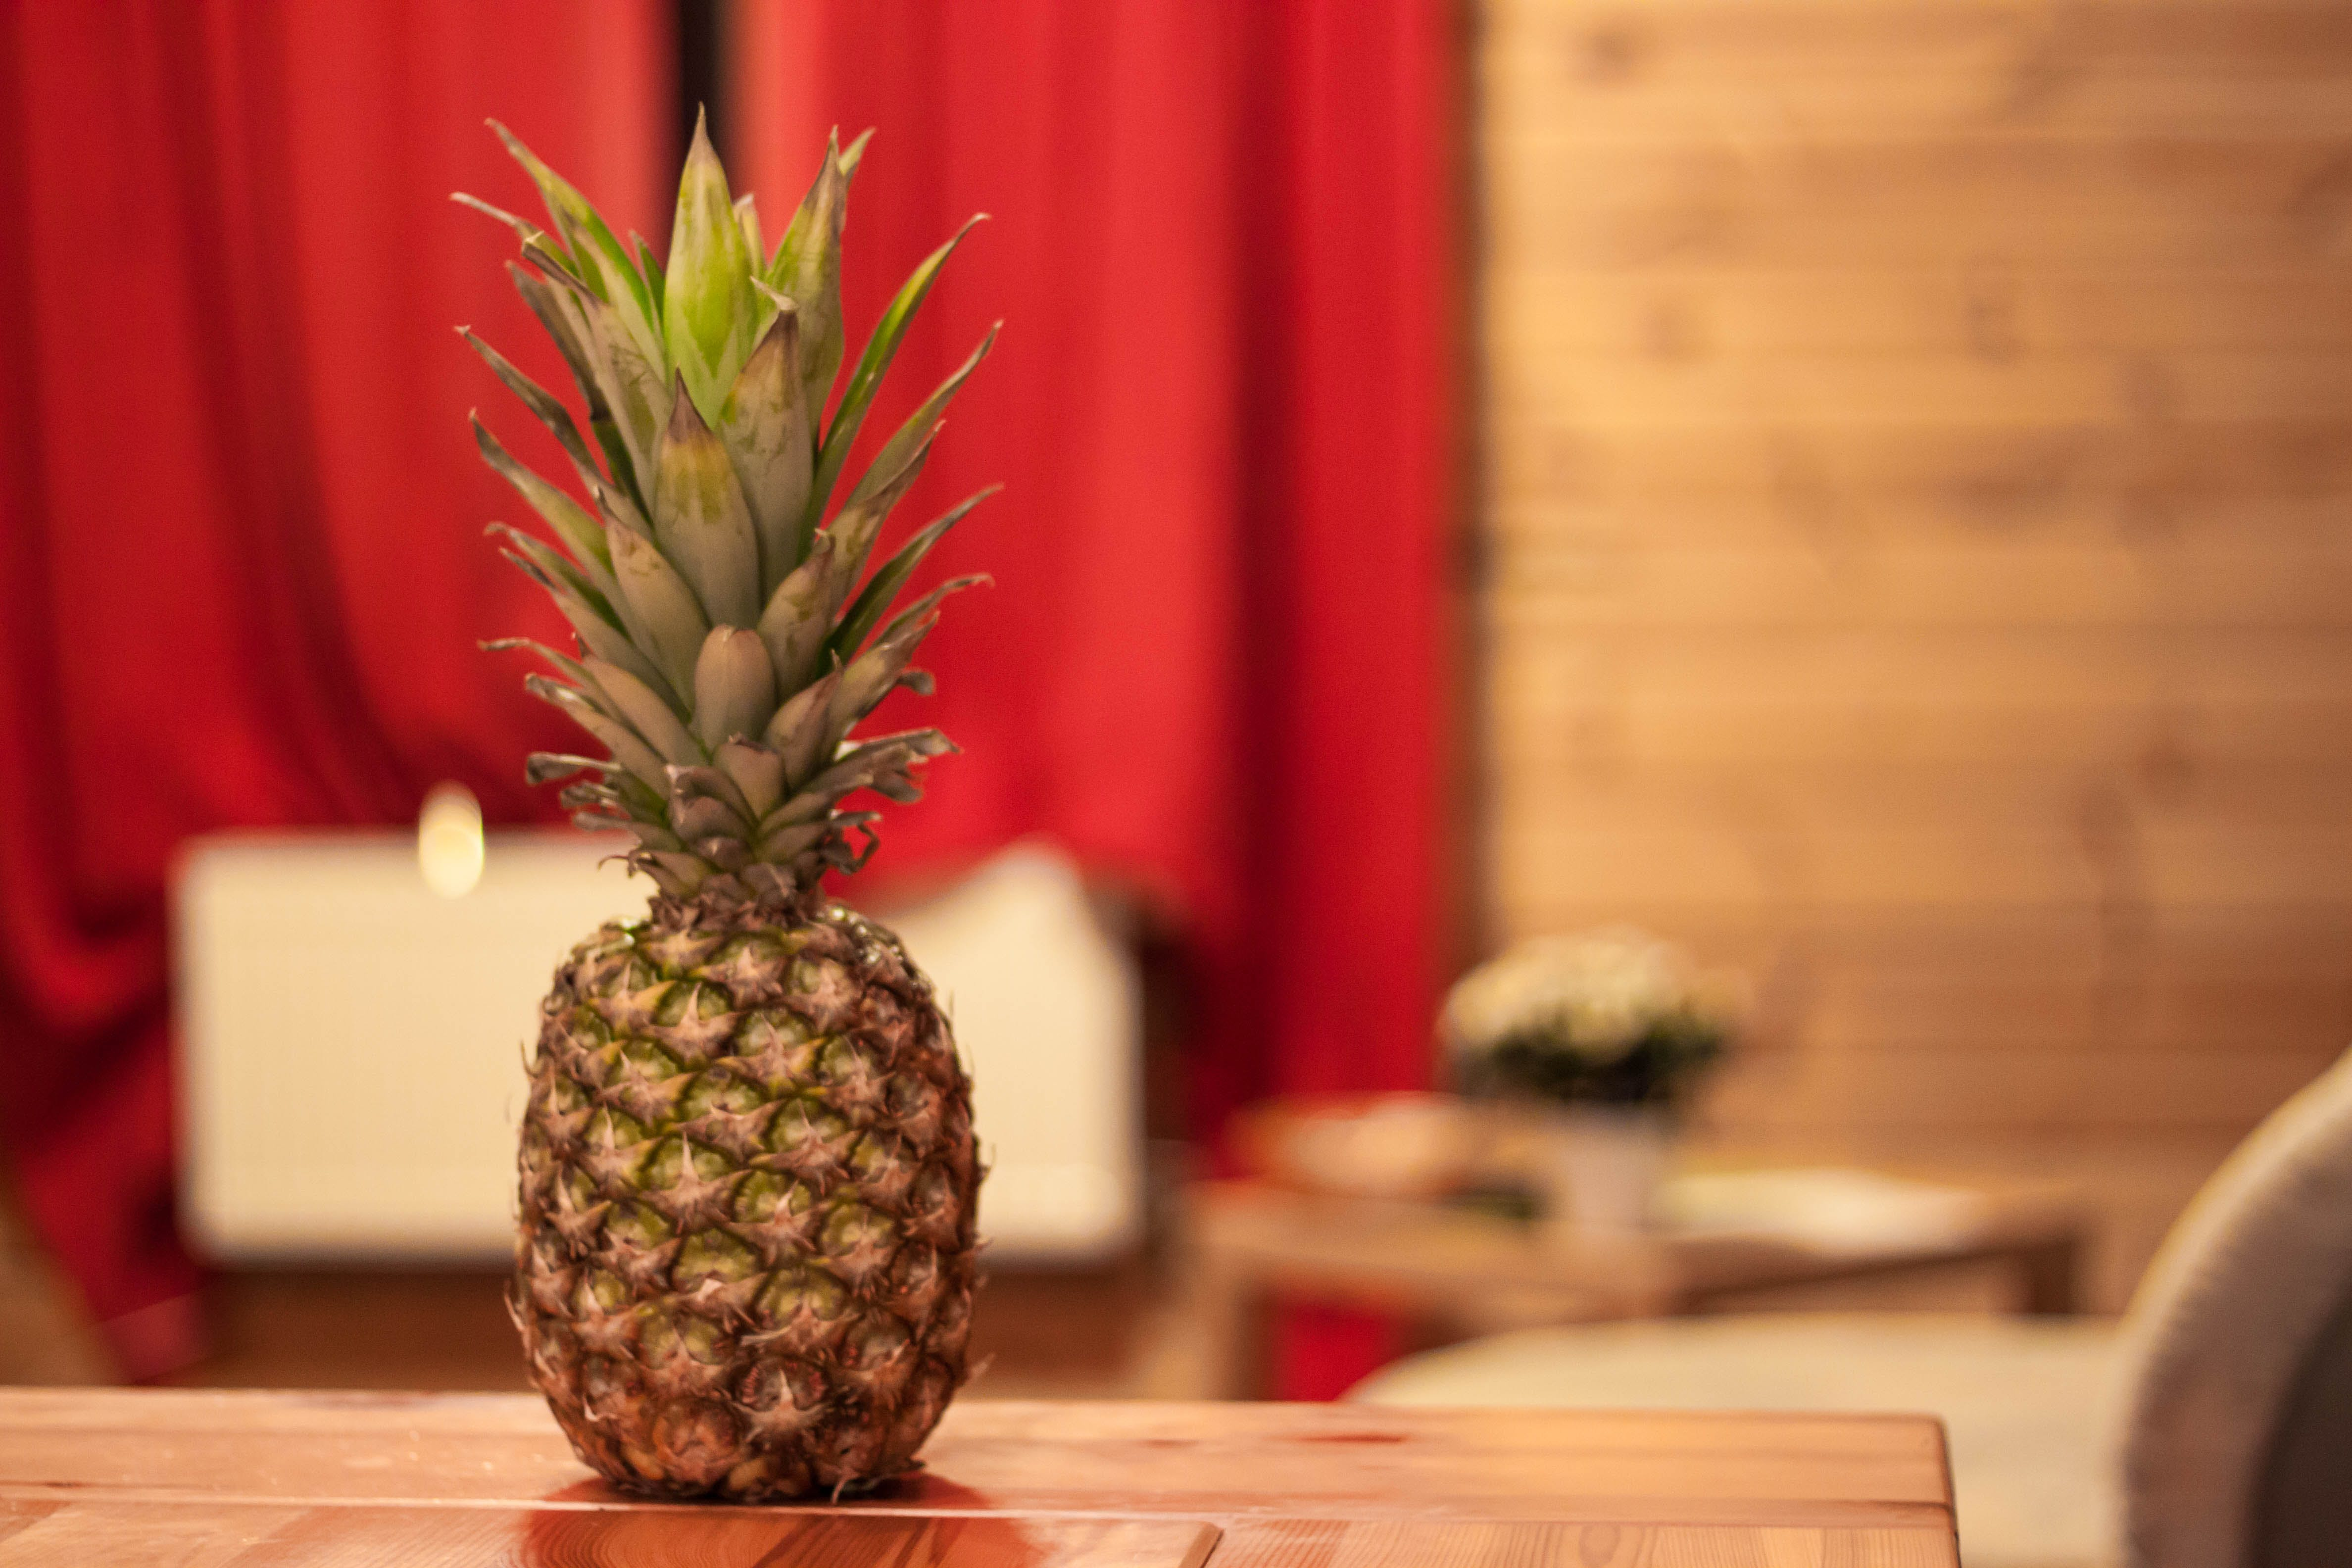 Free stock photo of food, table, pineapple, fruit